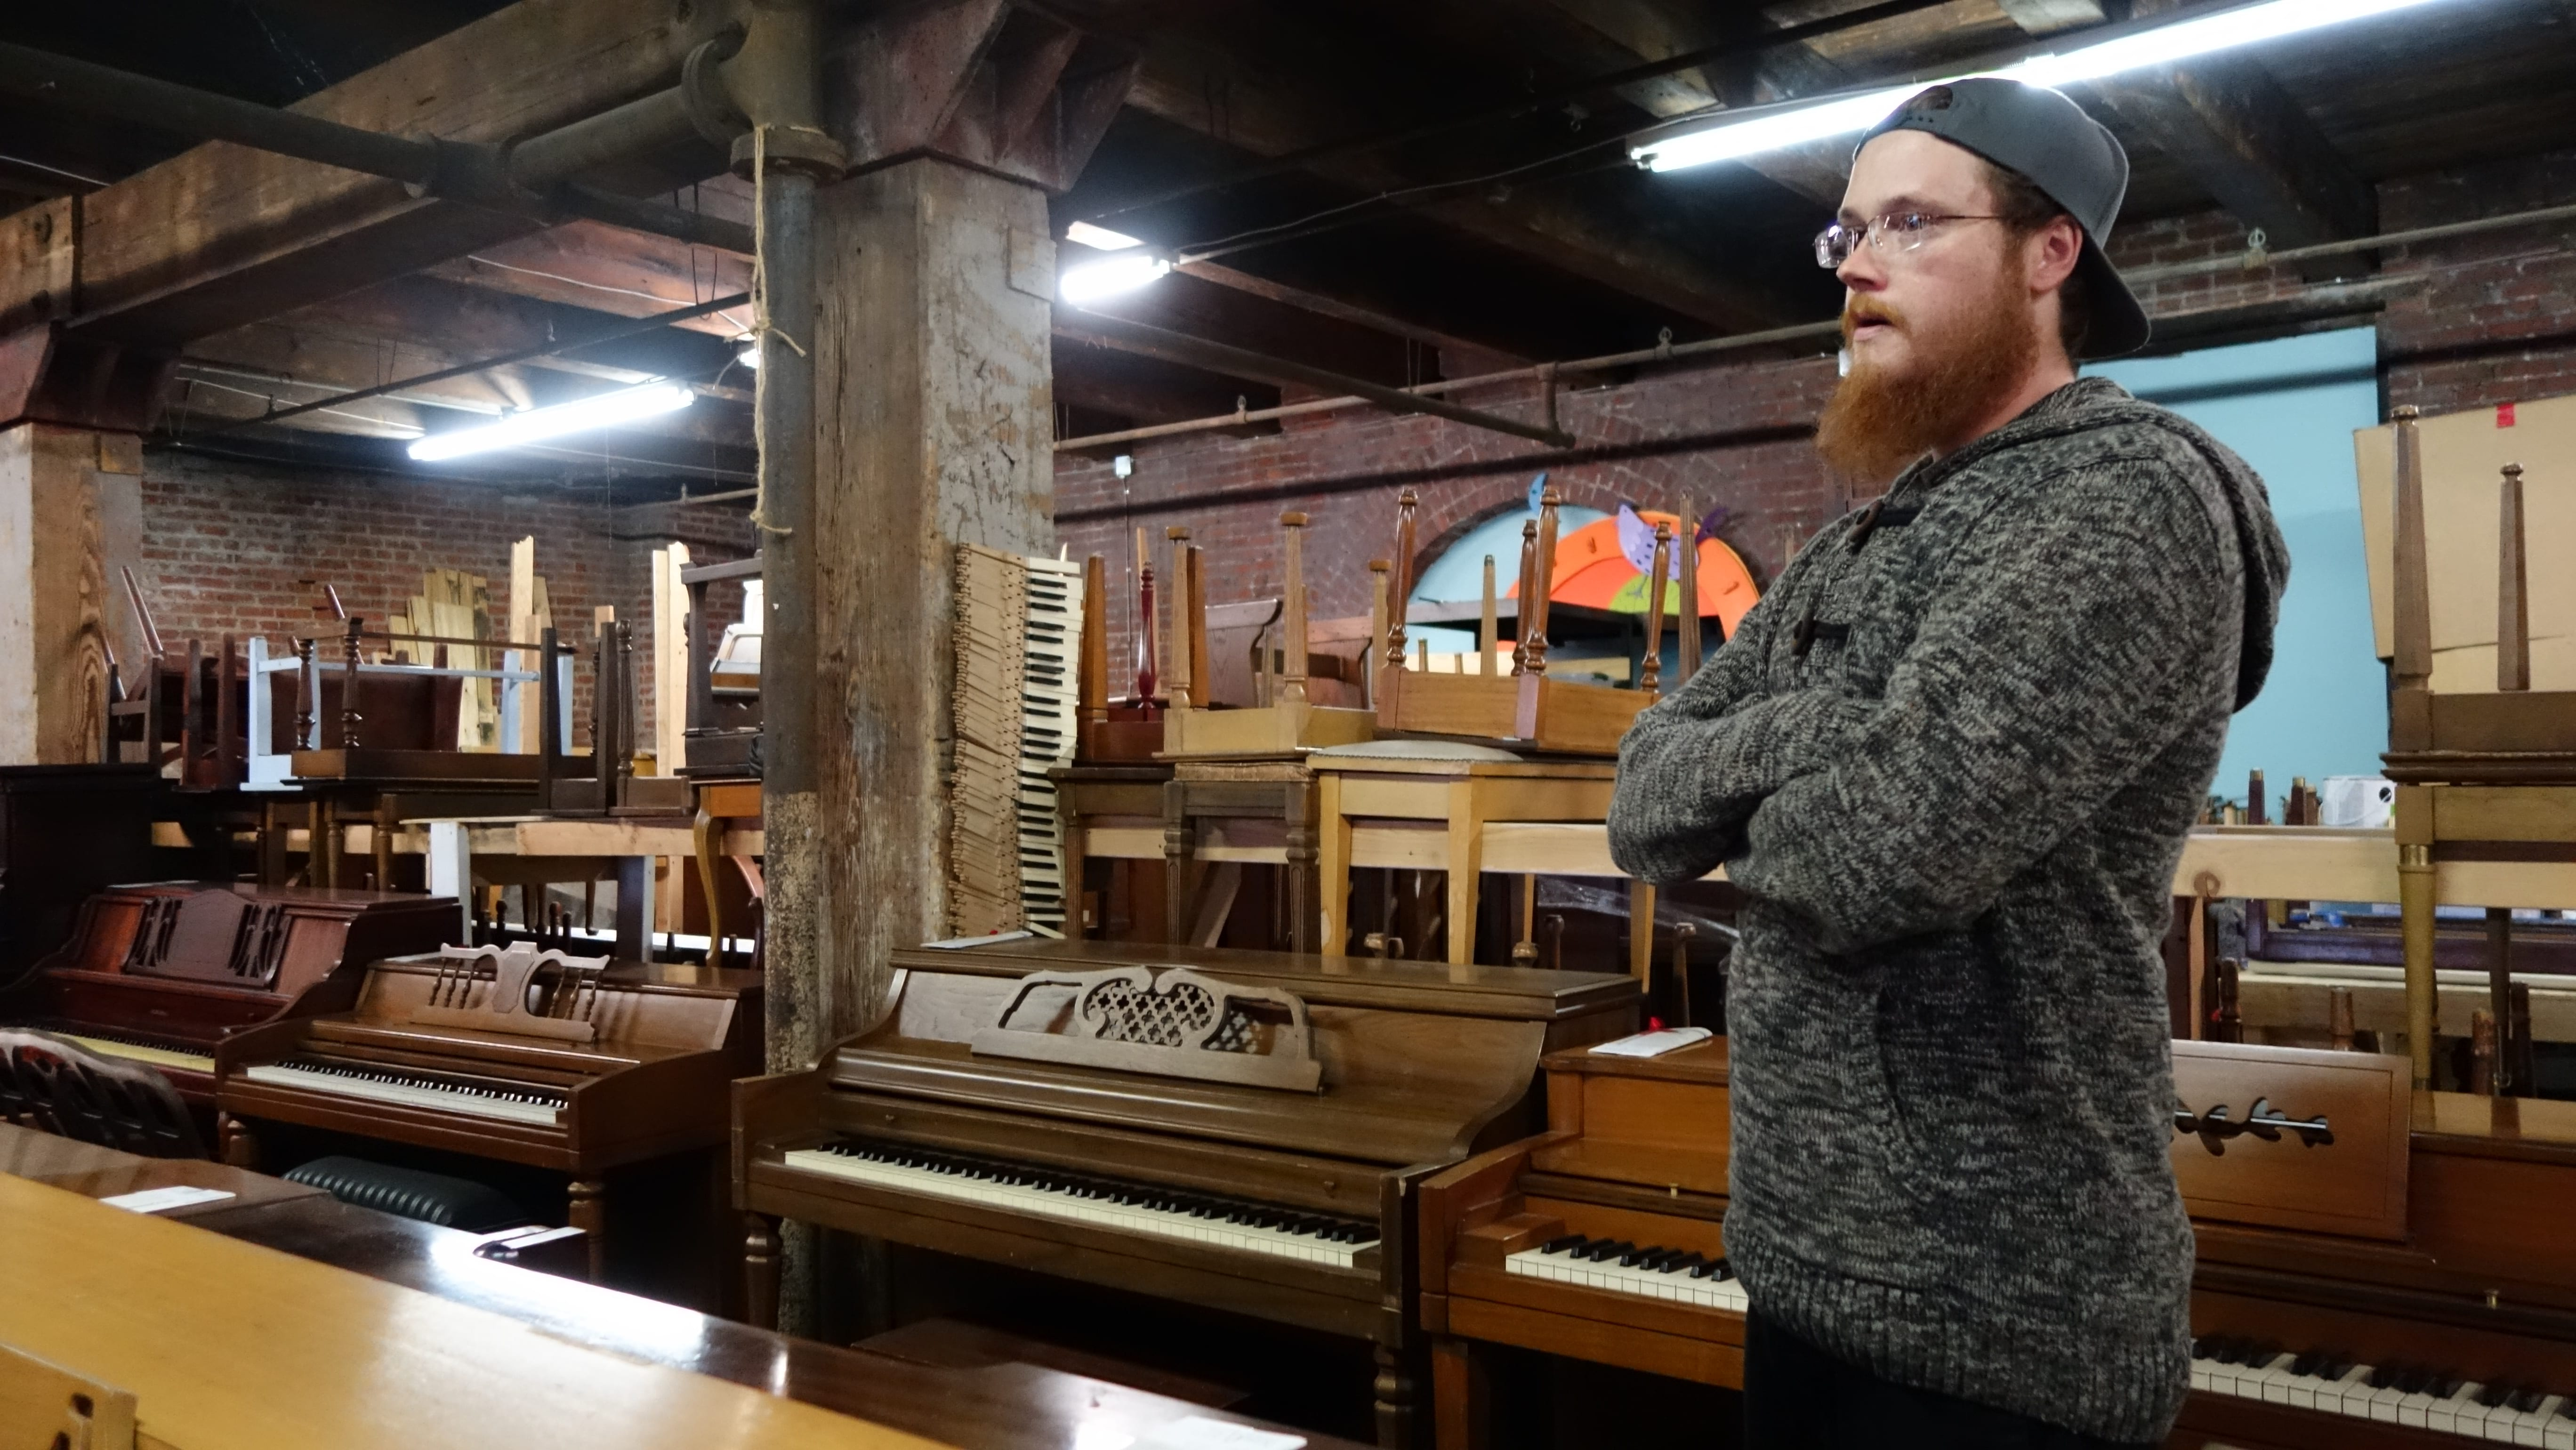 A man standing near pianos.